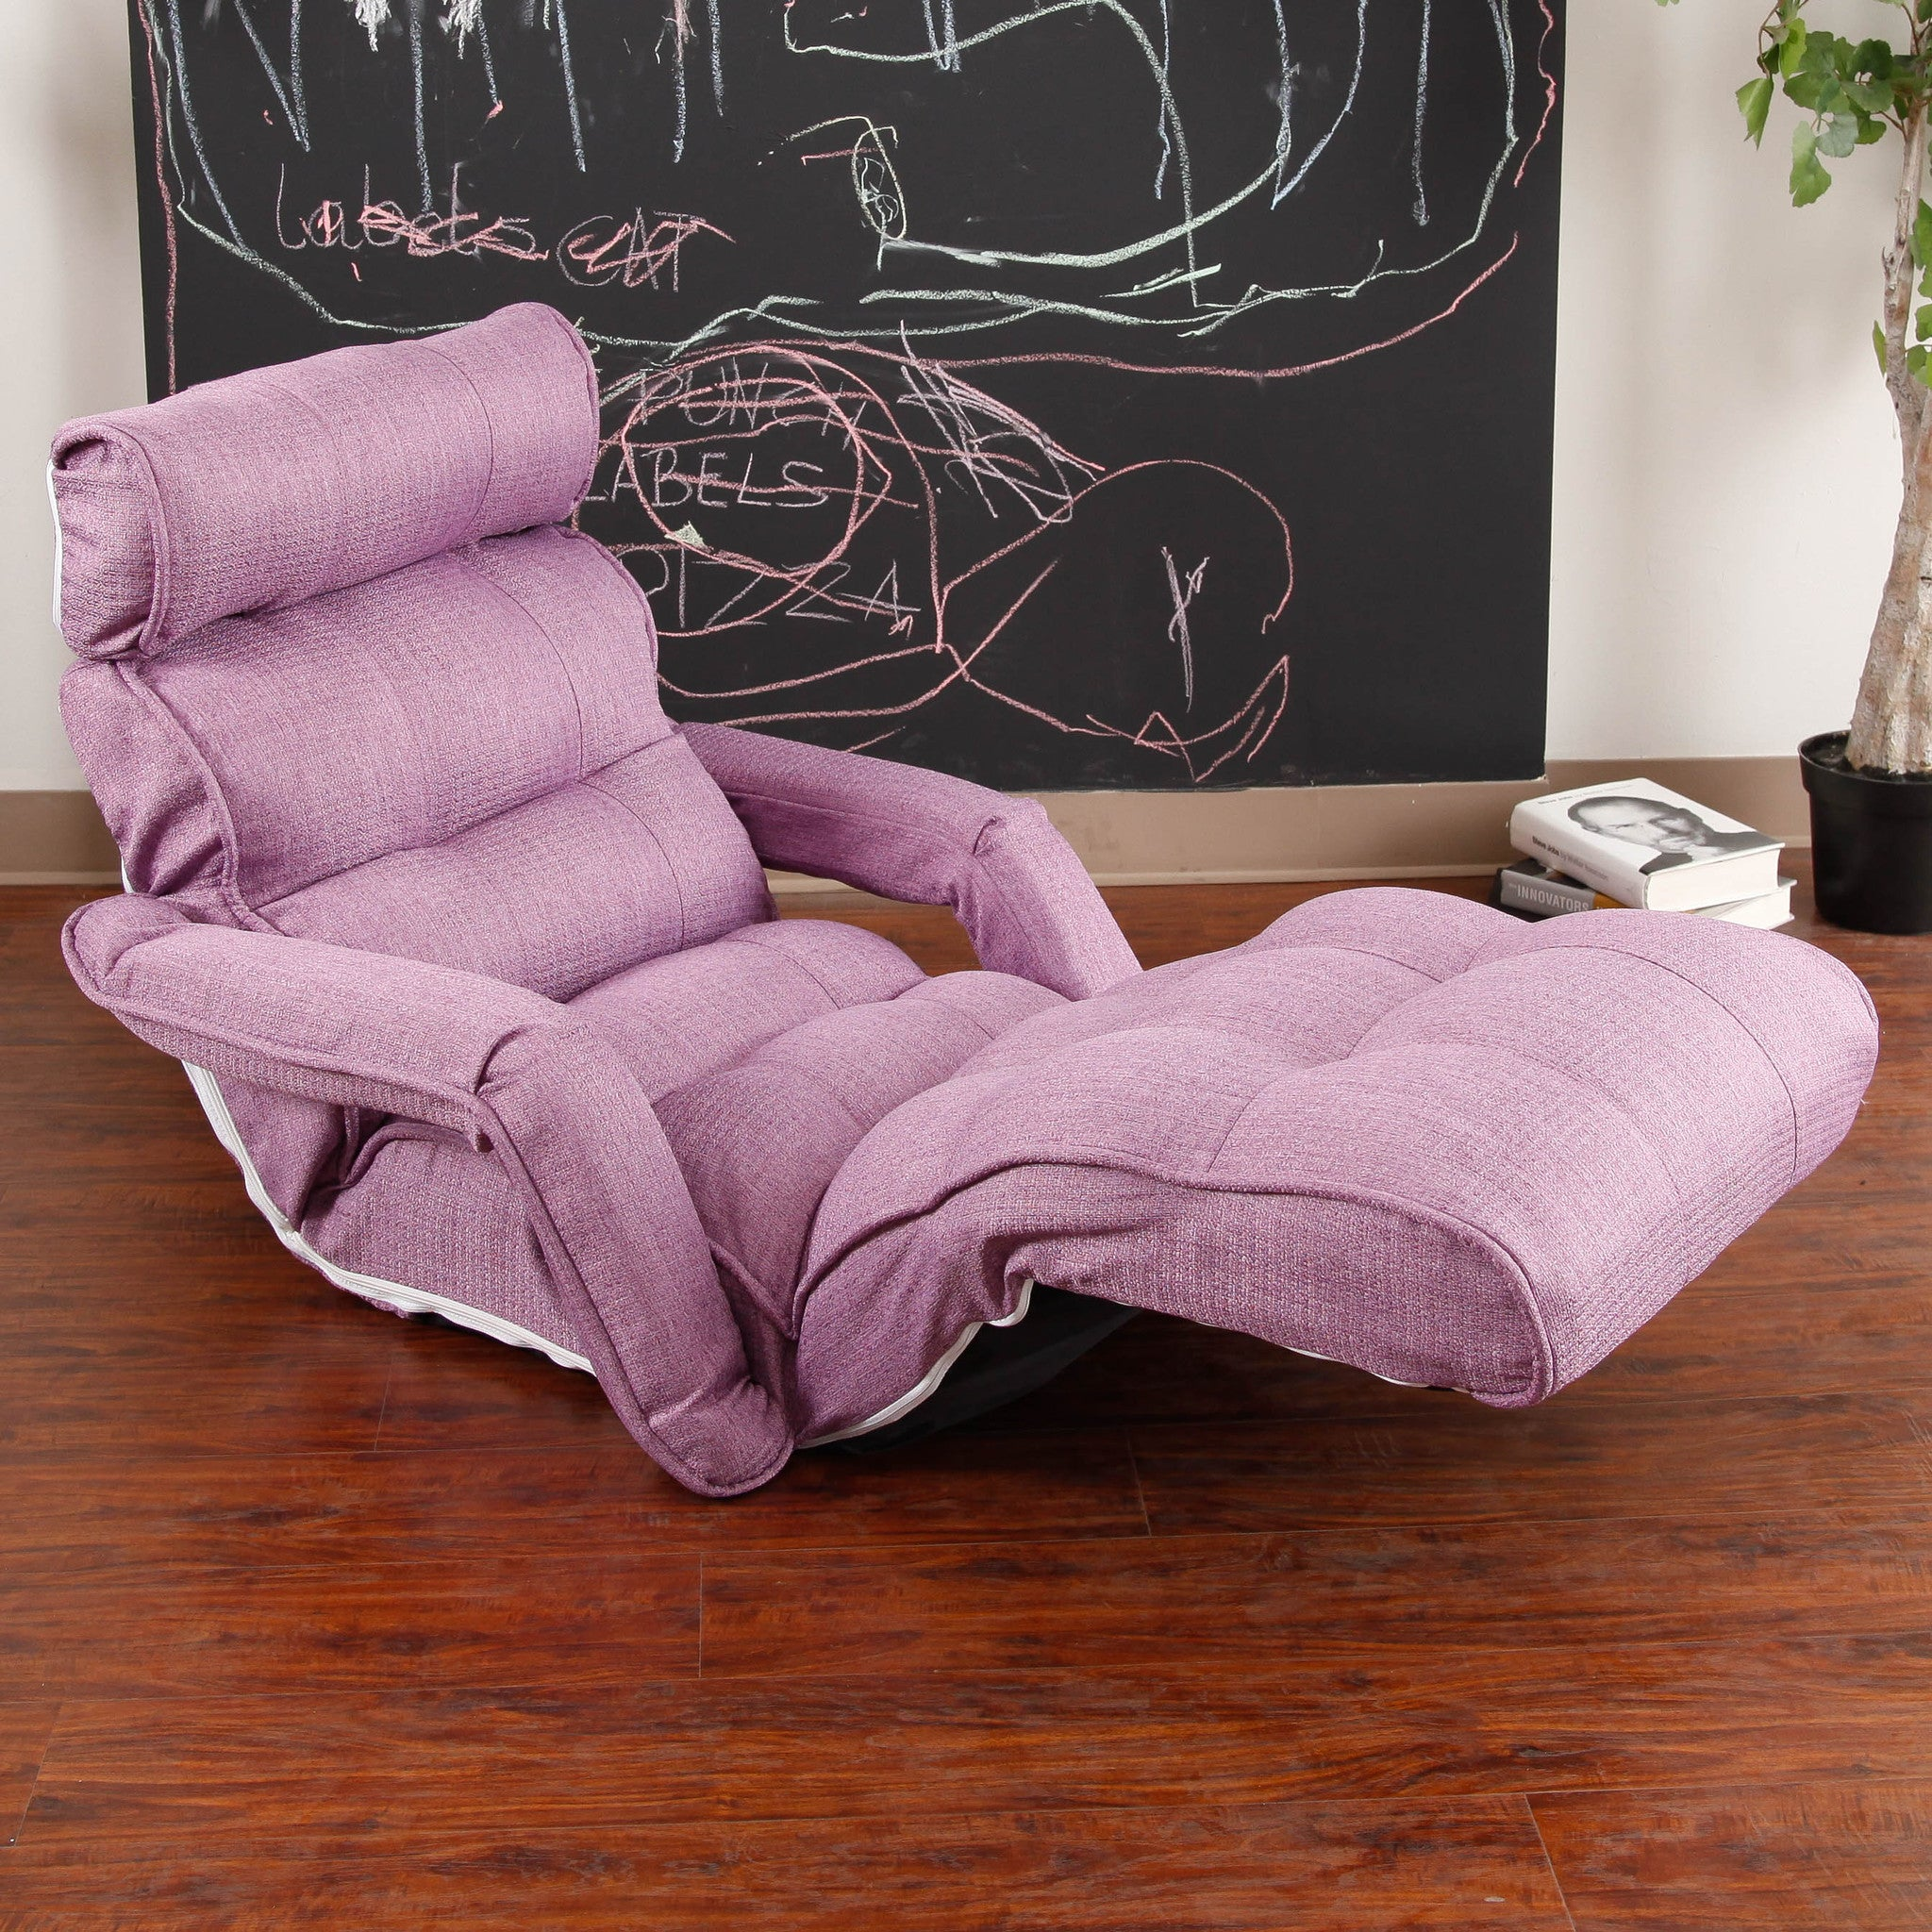 Pro Floor Sofa Chair Recliner With Armrest, Deep Lavender Soft Fabric